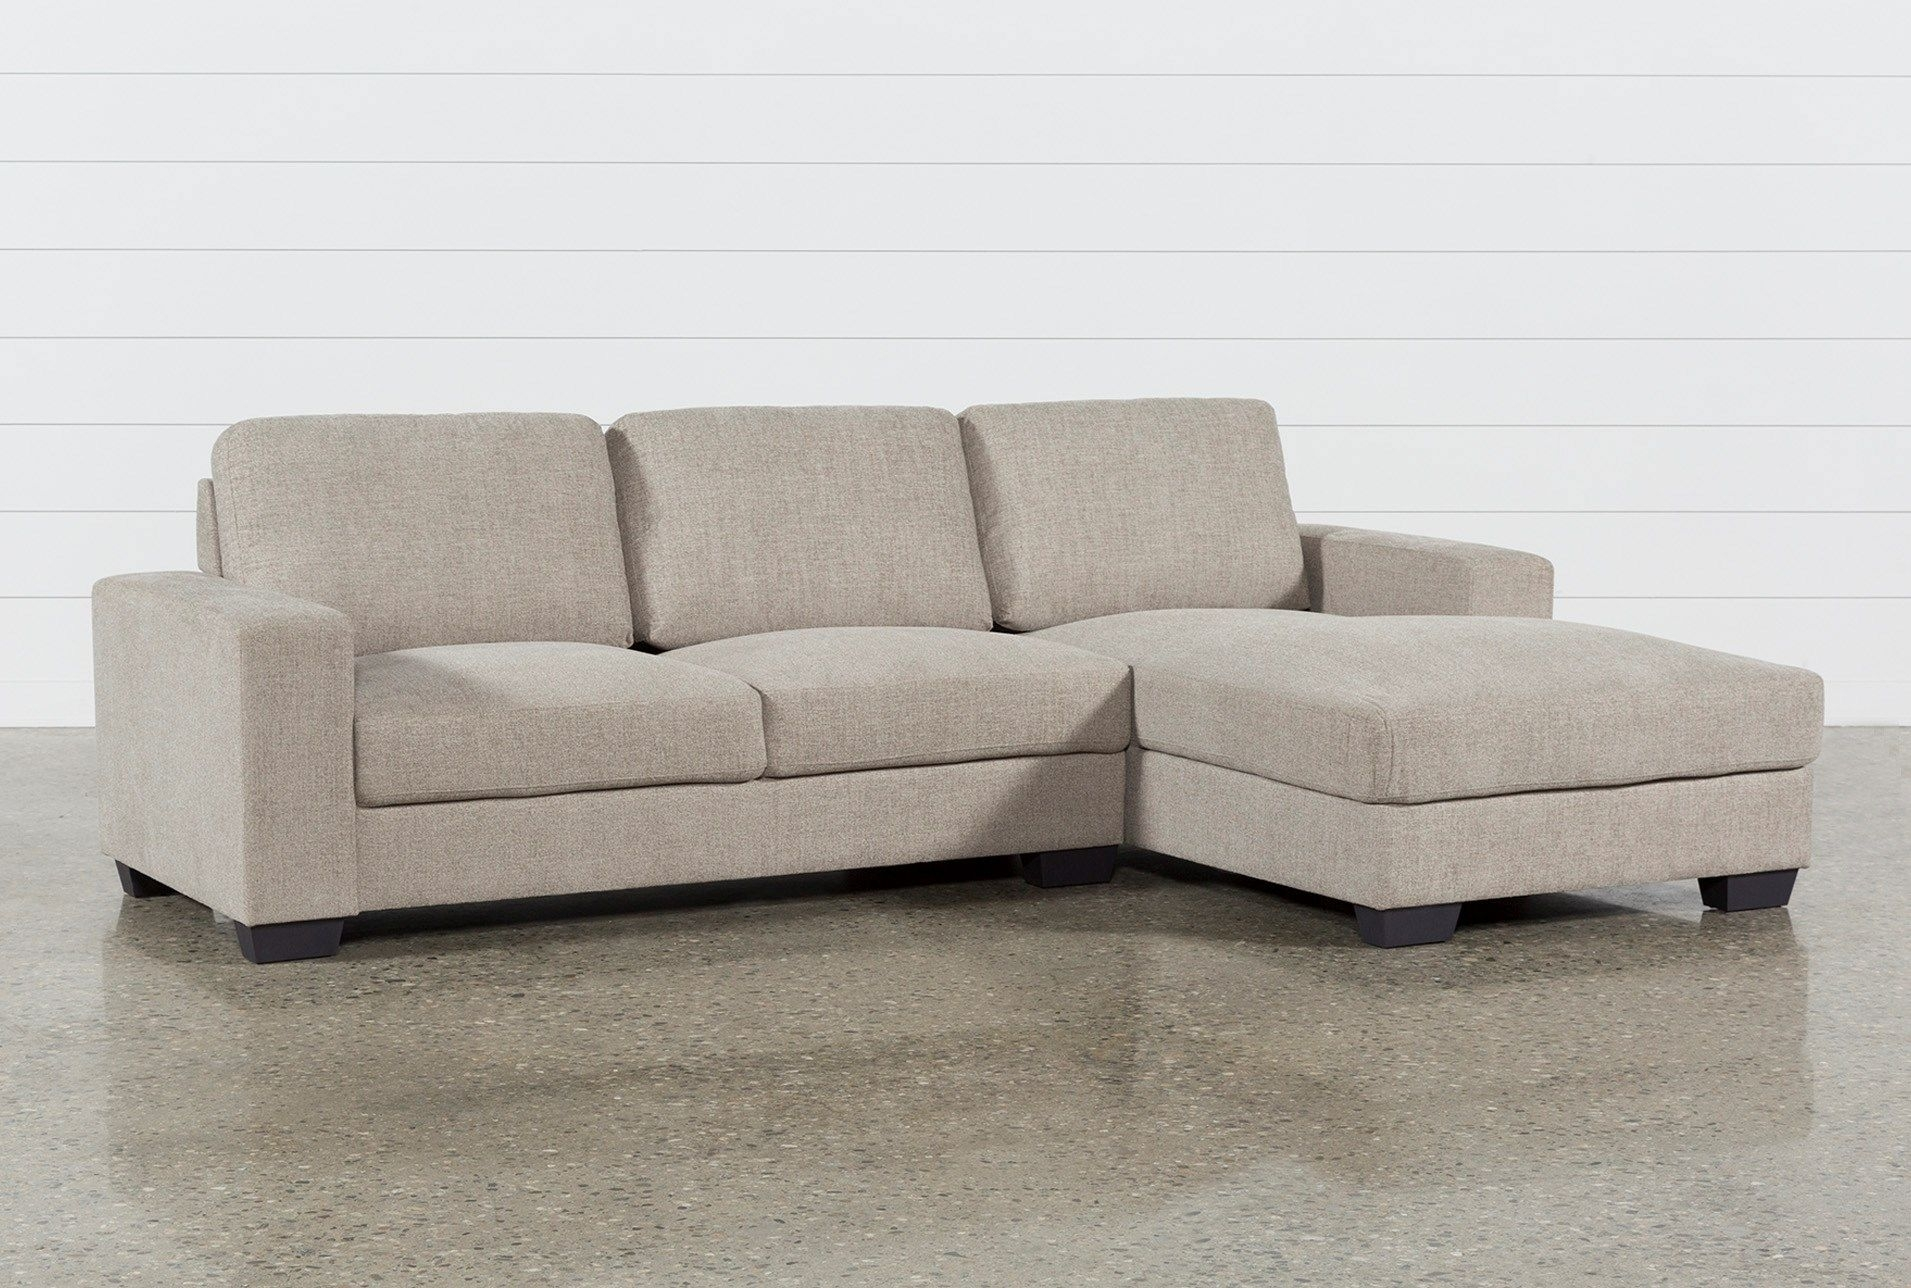 Jobs Oat 2 Piece Sectional With Right Facing Chaise In 2018 Pertaining To Arrowmask 2 Piece Sectionals With Sleeper & Right Facing Chaise (View 11 of 25)